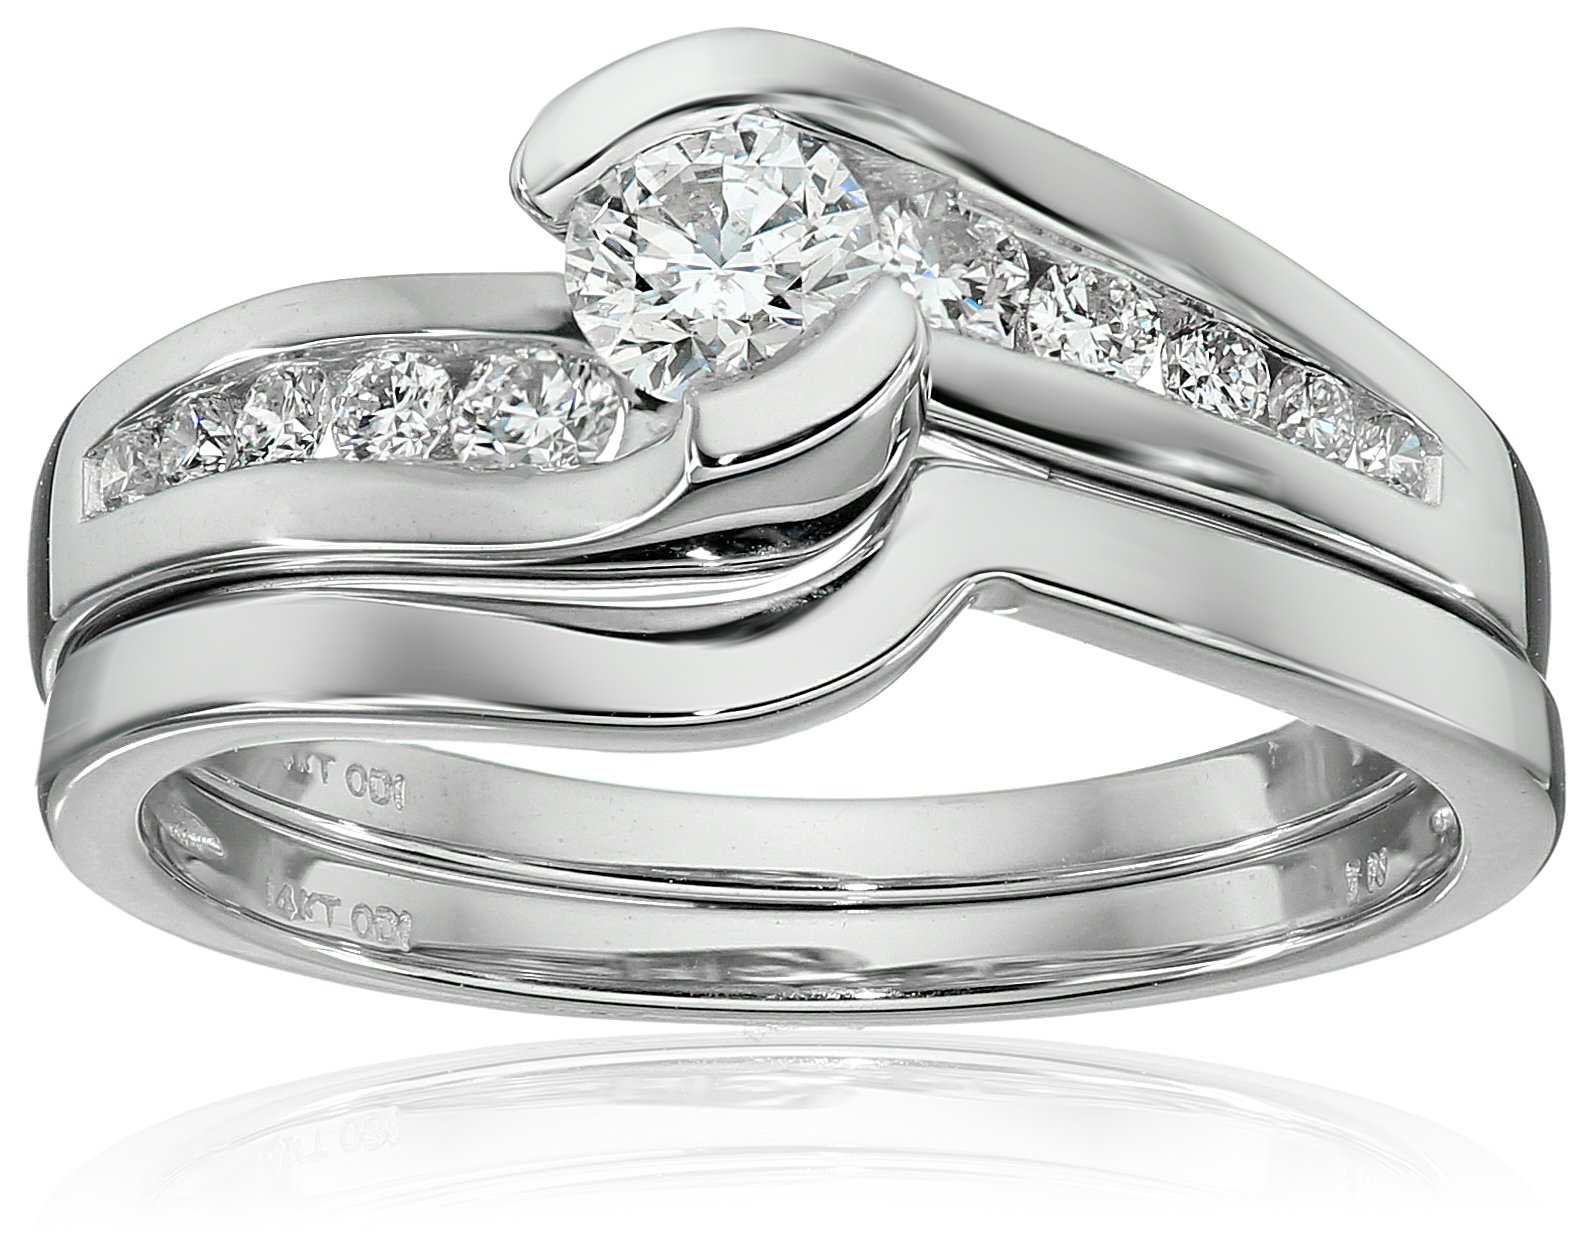 IGI Certified 14k White Gold Diamond Channel Bridal Wedding Ring Set (5/8 cttw, H-I Color, I1-I2 Clarity), Size 7